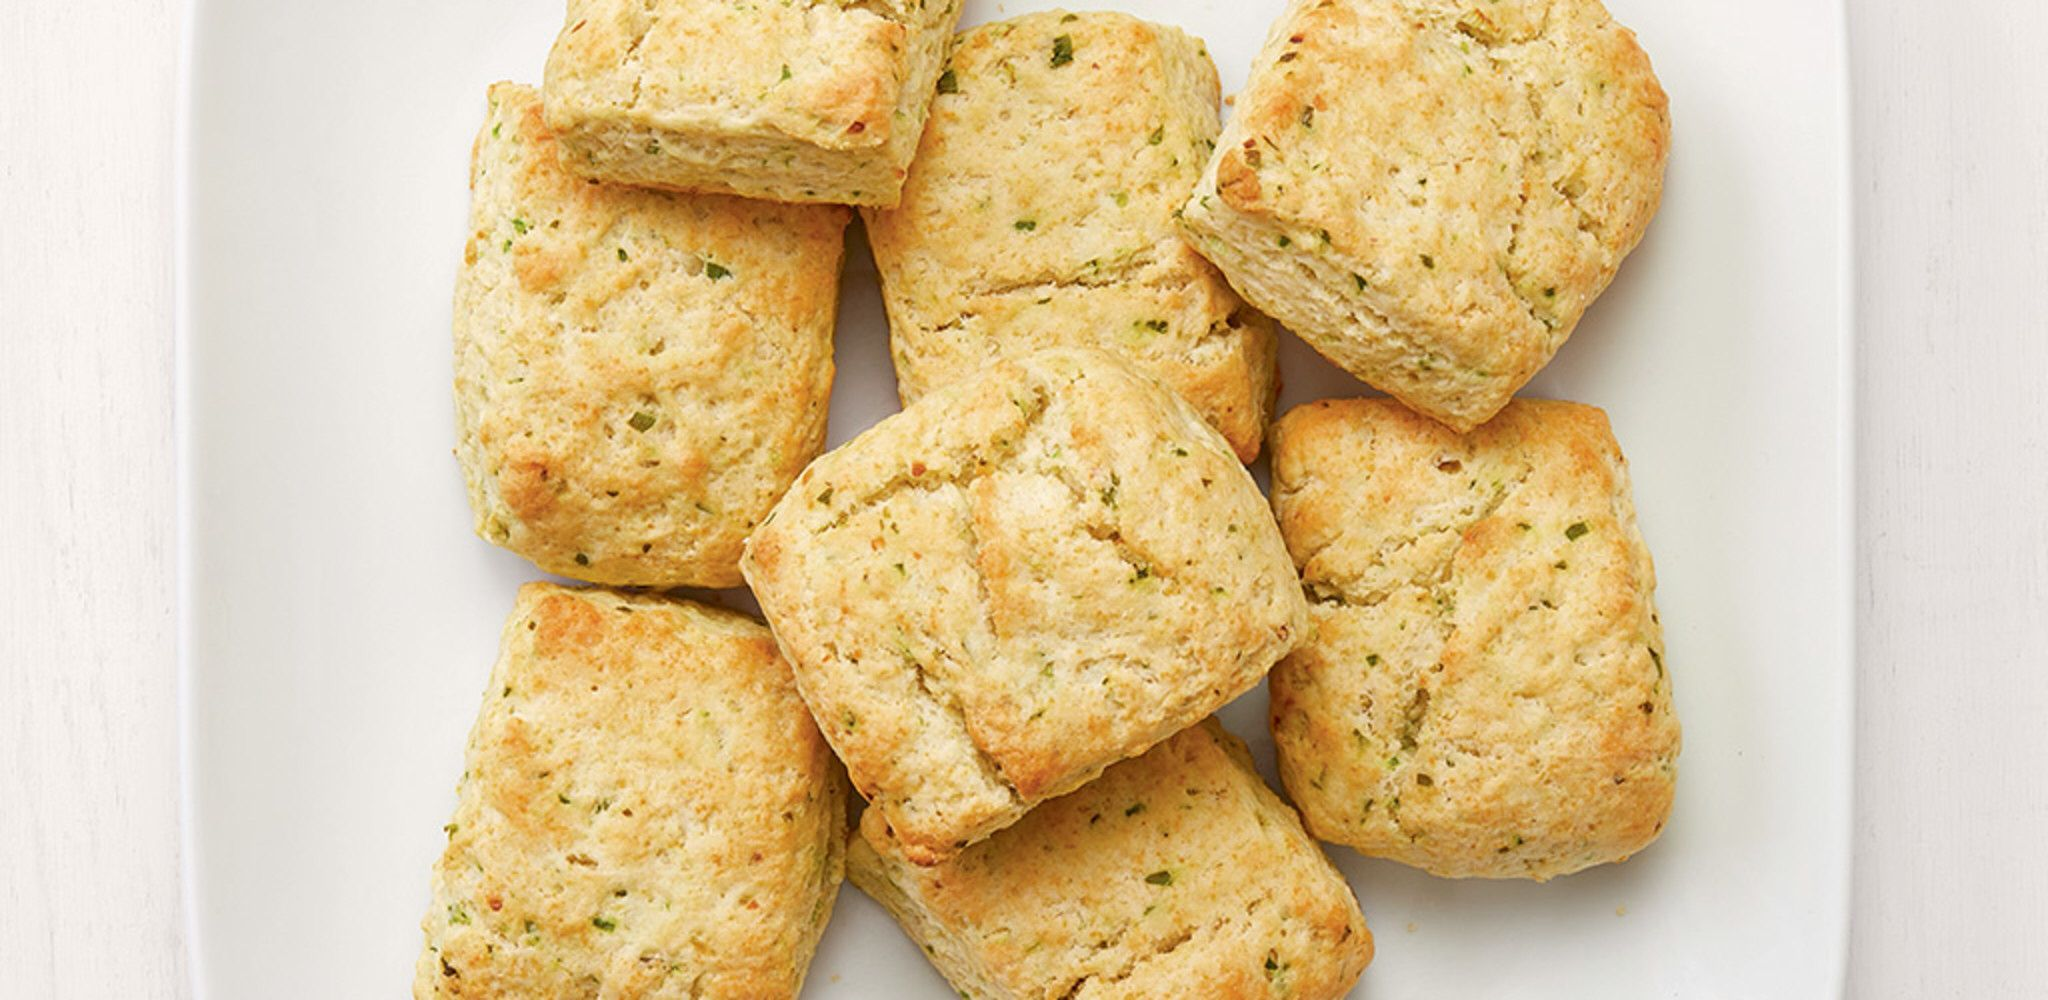 Sour Cream And Onion Biscuits By Food Network Kitchen In 2020 Food Network Recipes Biscuit Recipe Sour Cream